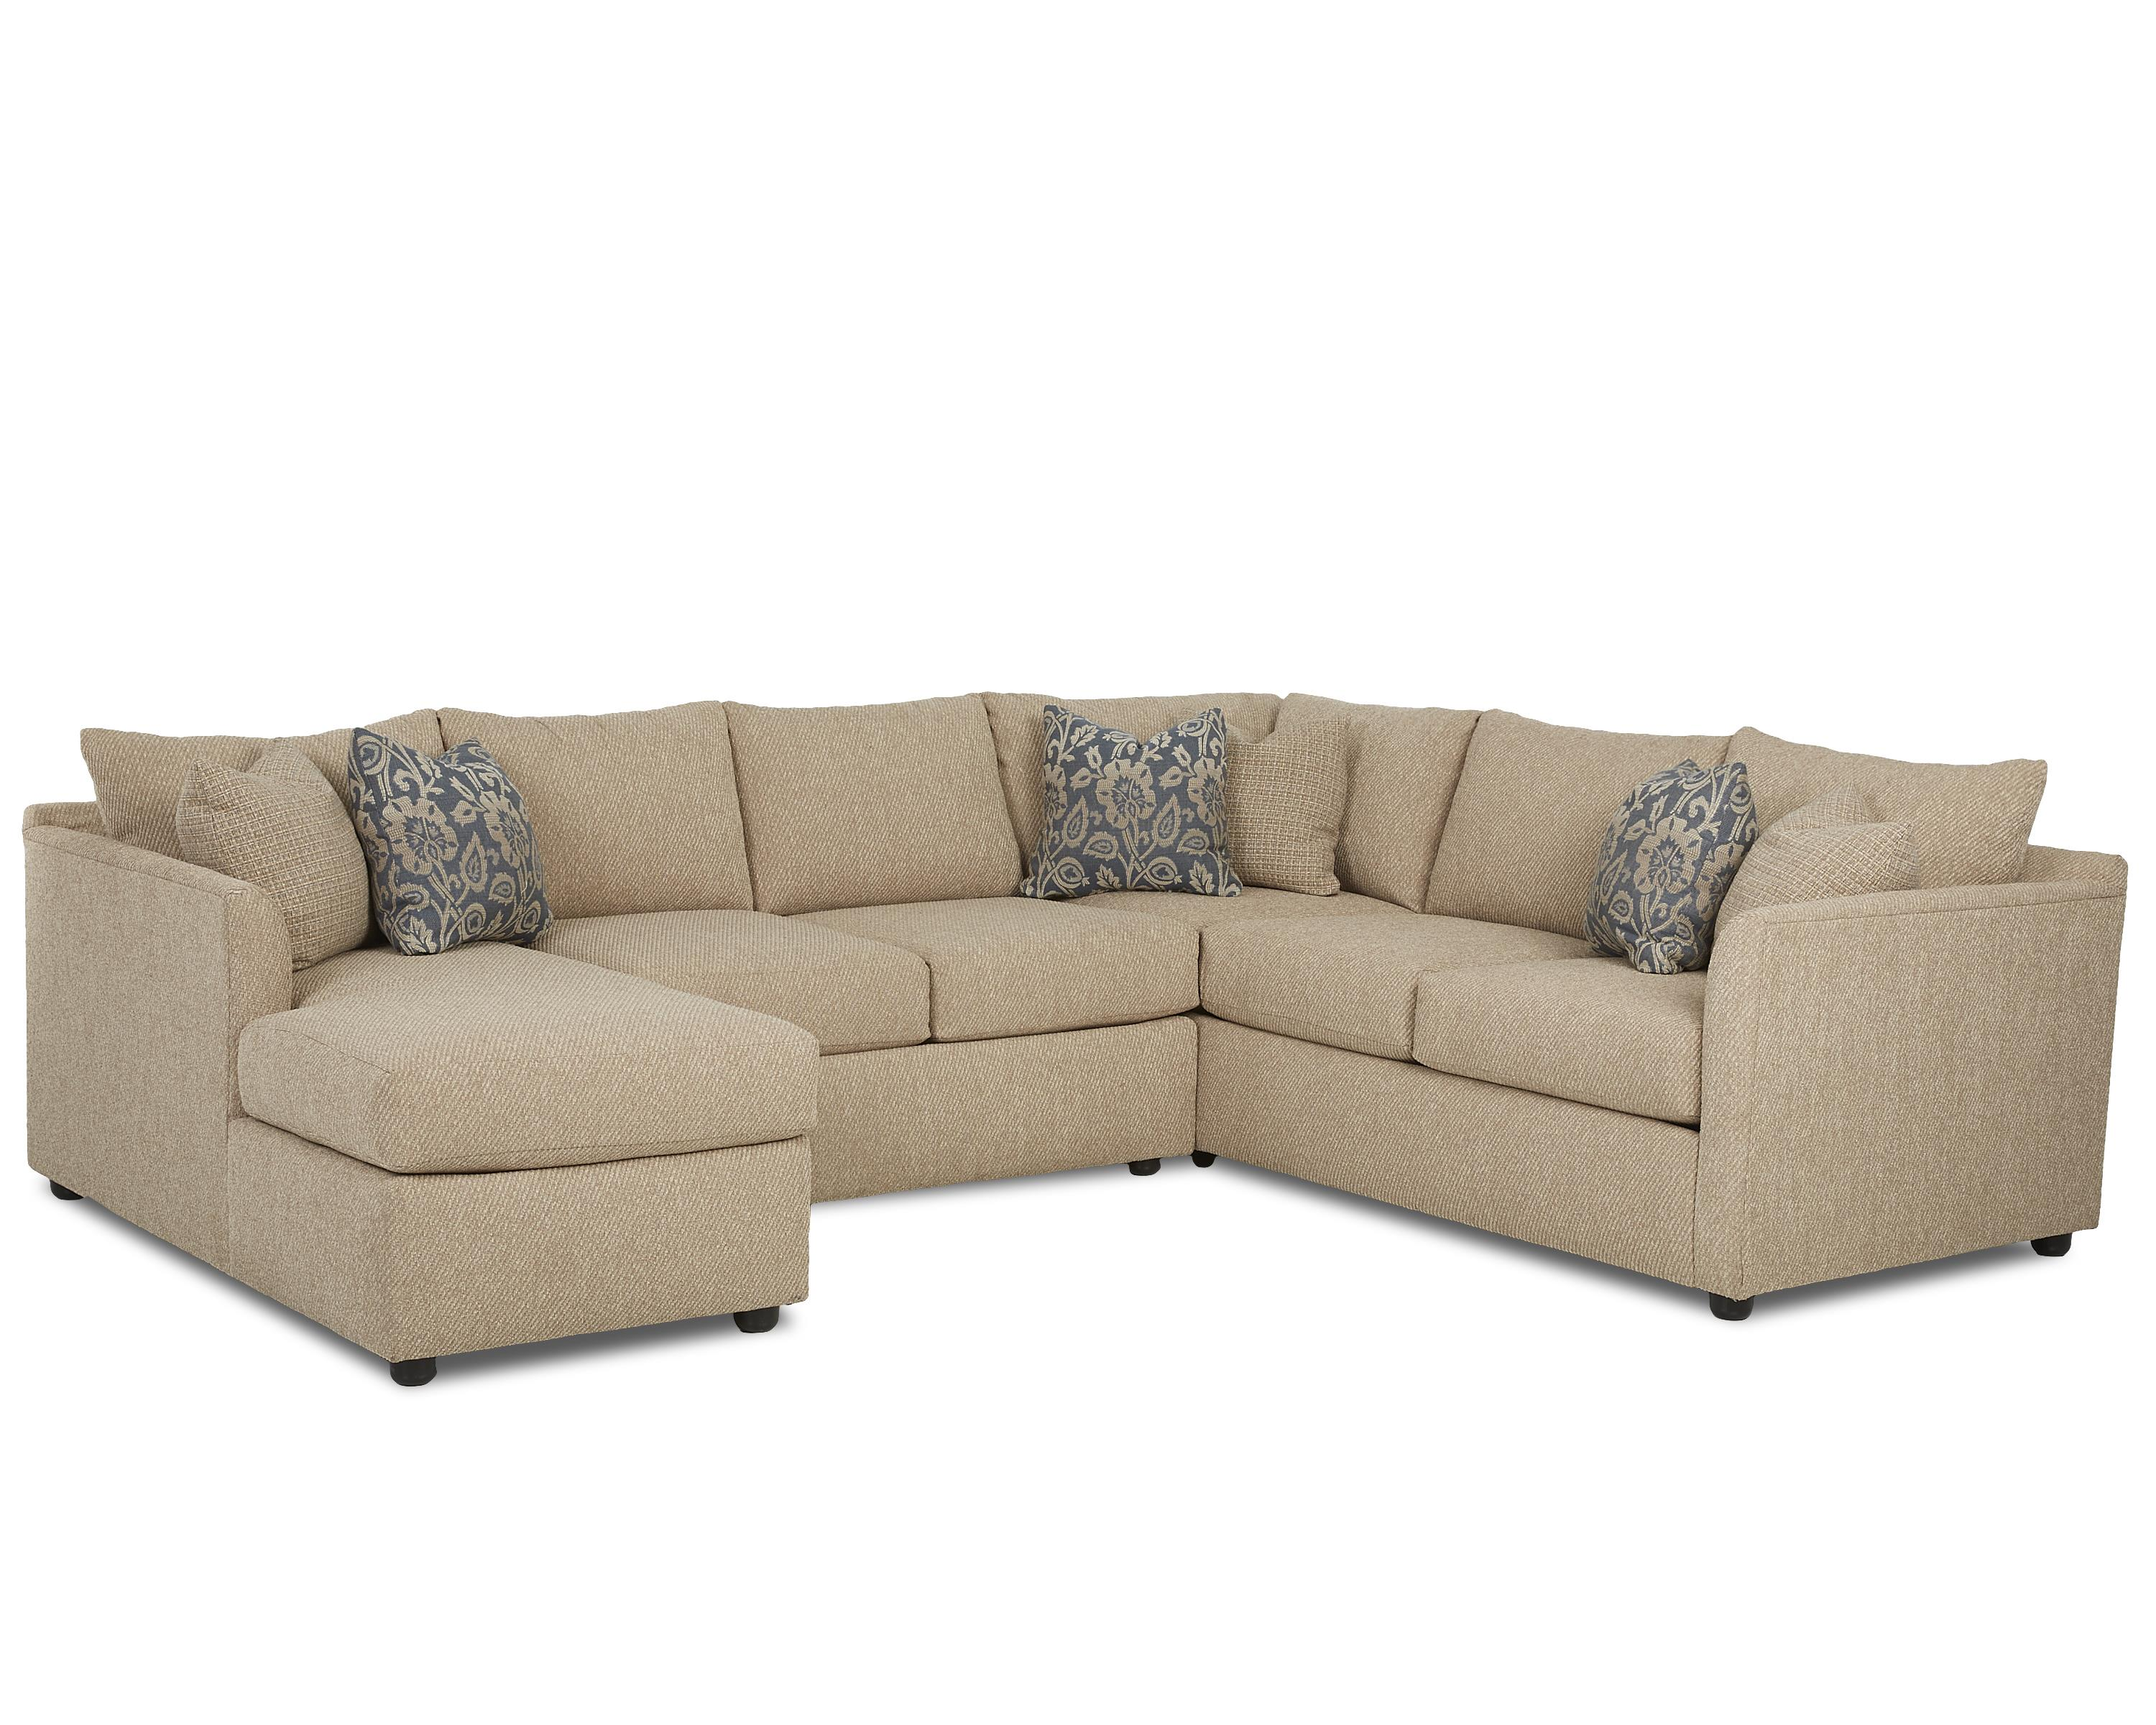 sofas in atlanta sofa seat foam replacement trisha yearwood home collection by klaussner